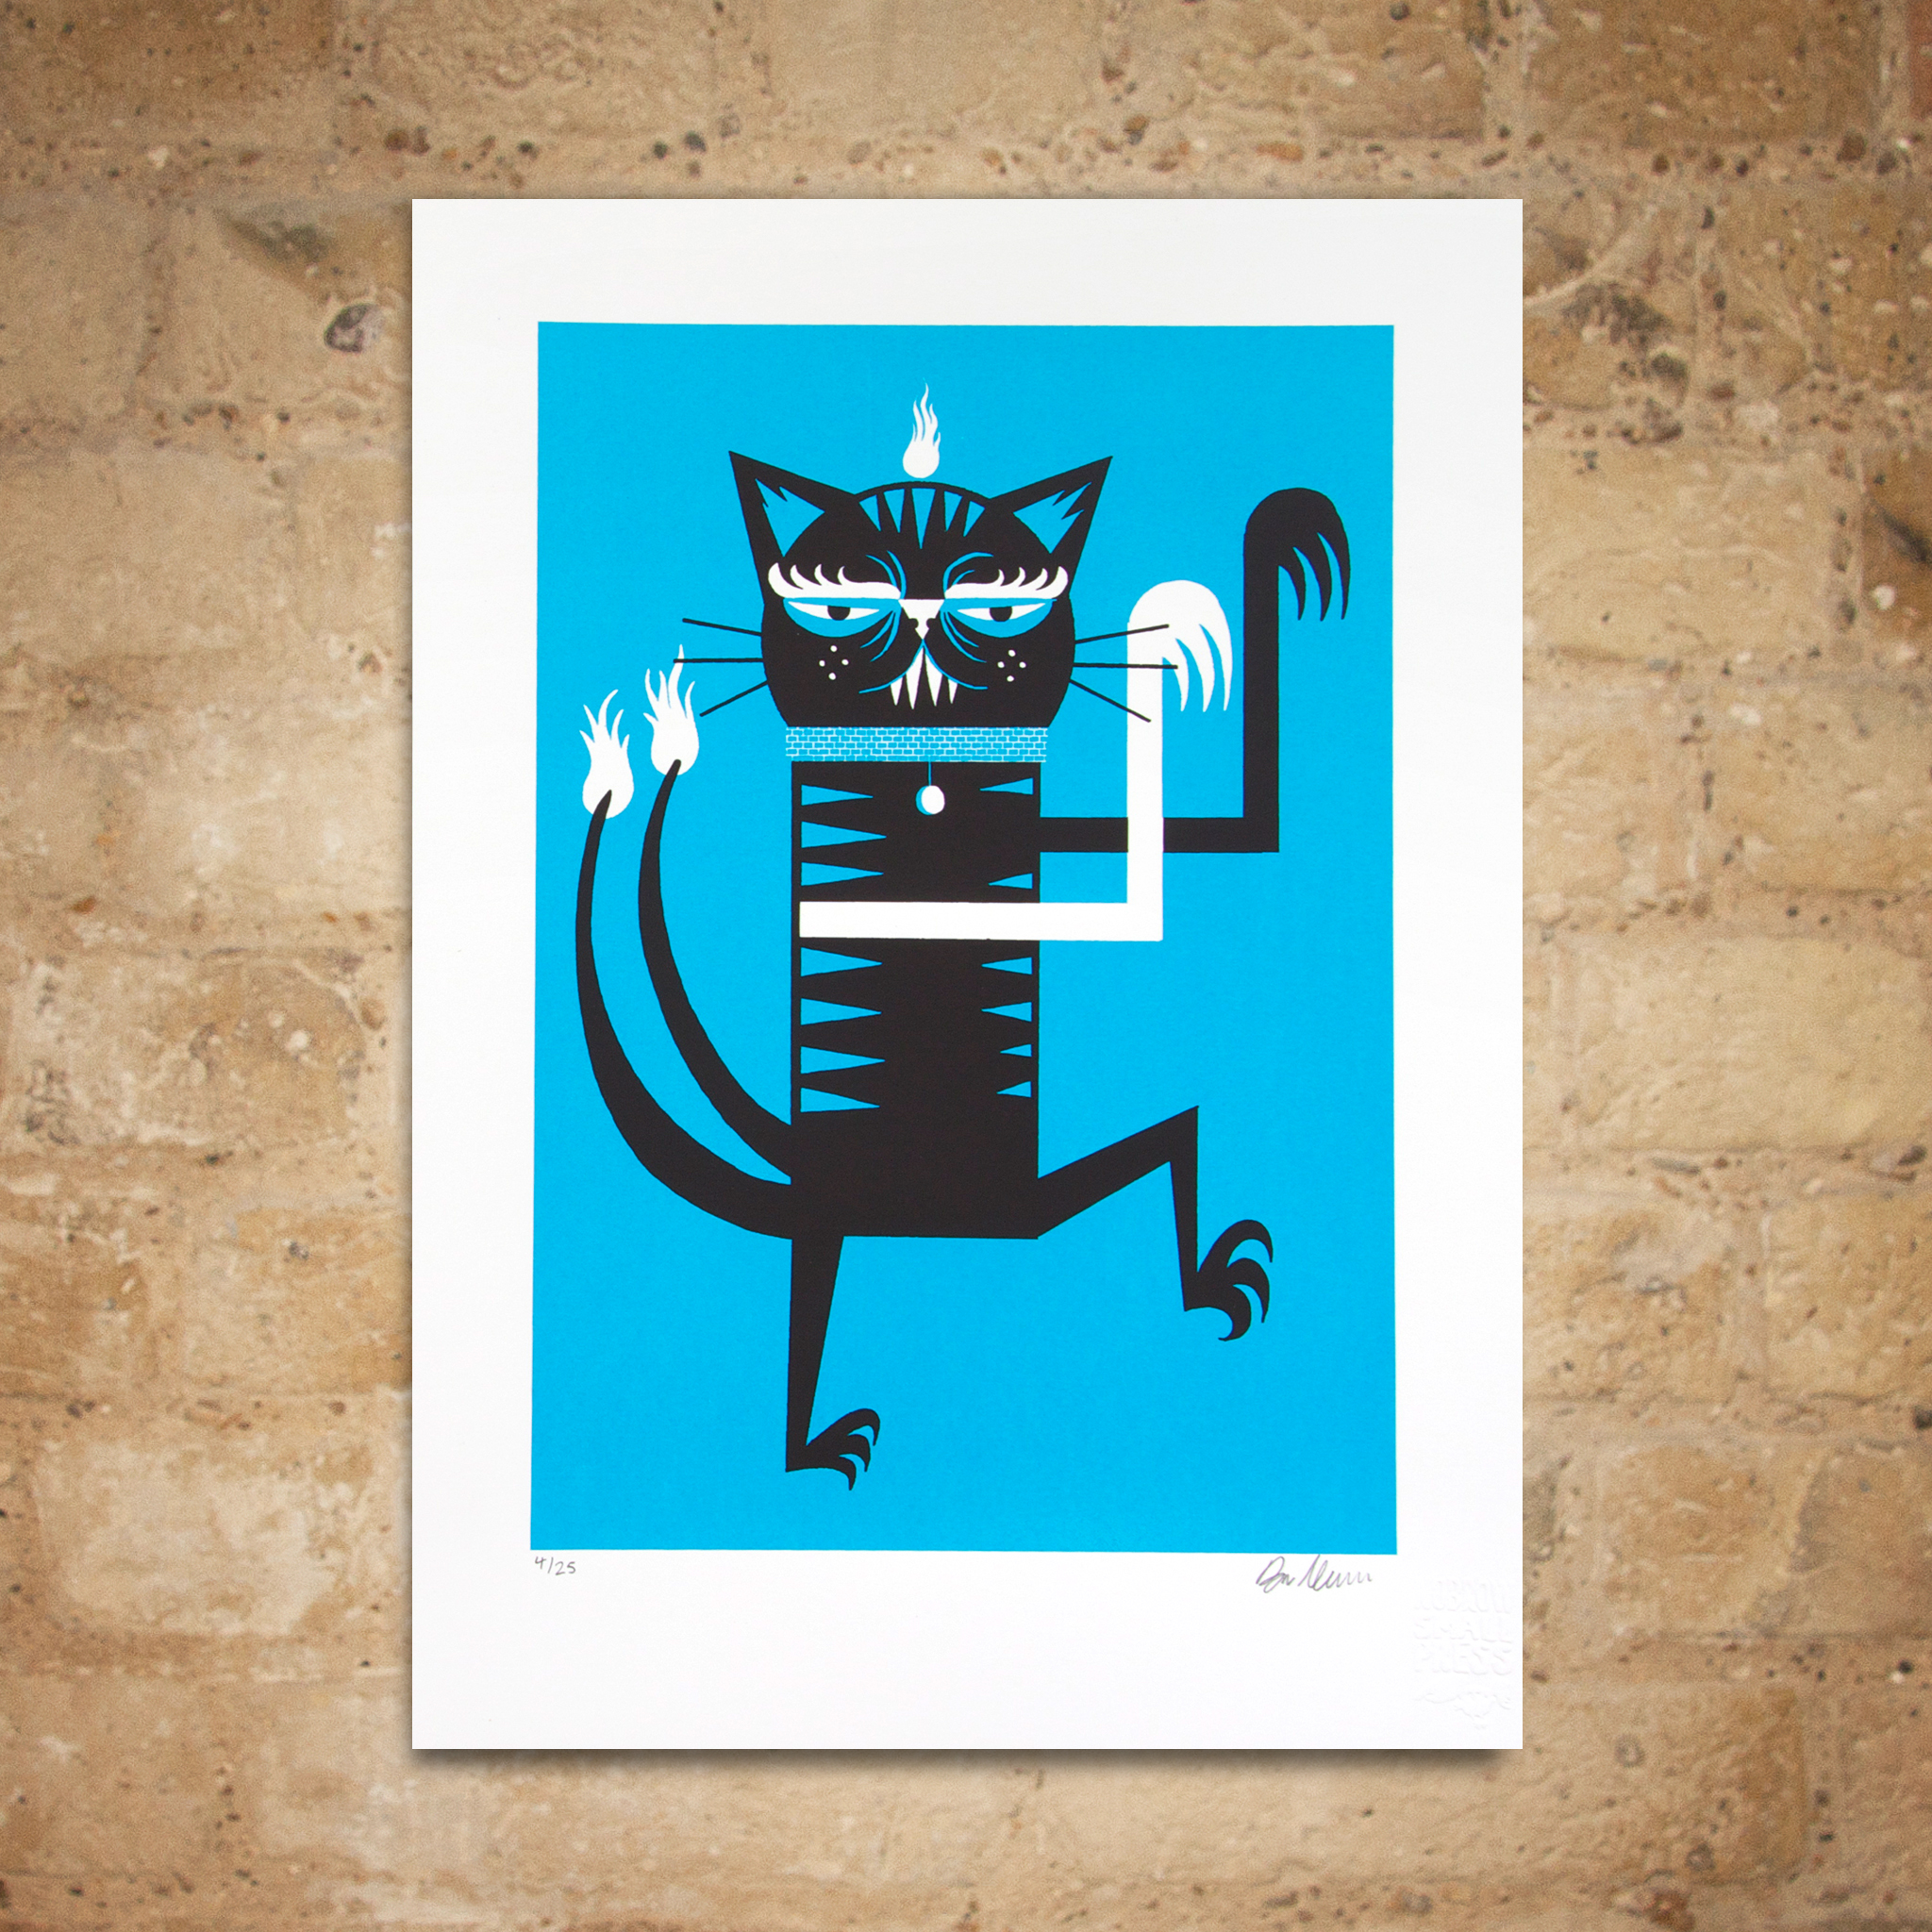 Ben Newman 'Cat' Screenprint